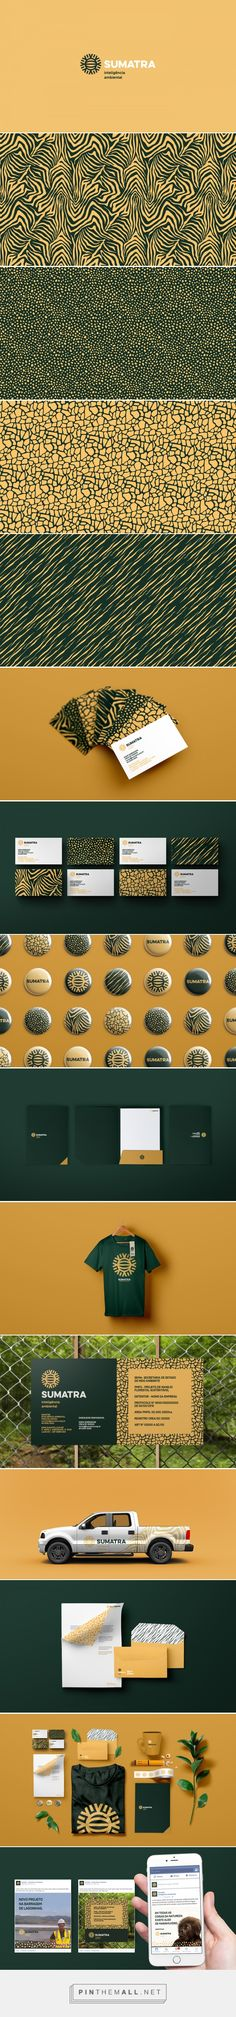 Sumatra intelligent environment Branding on Behance | Fivestar Branding –…